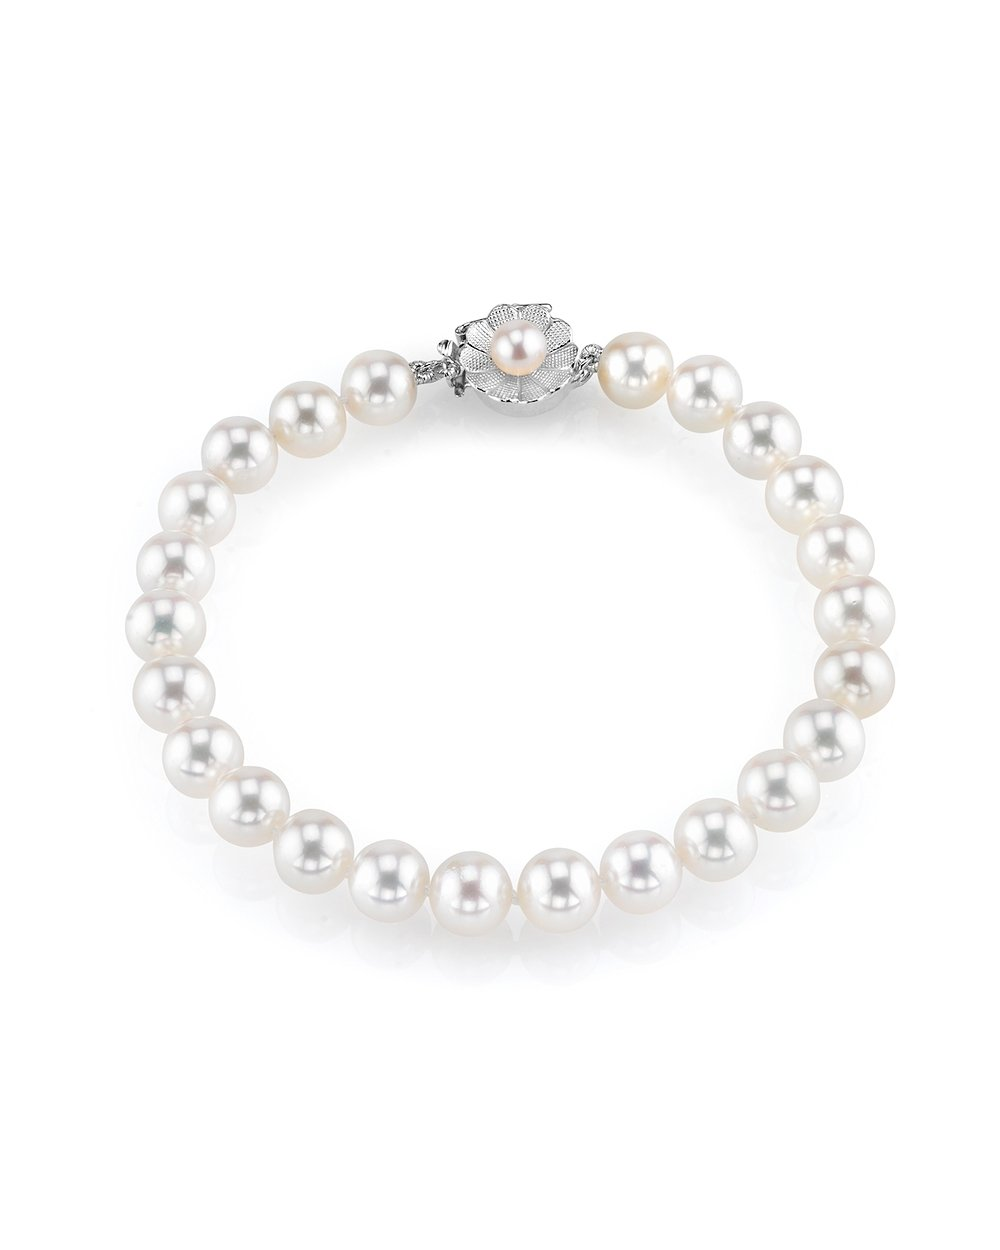 THE PEARL SOURCE AAA Quality 8-9mm Round White Freshwater Cultured Pearl Bracelet with 14K White Gold Flower Clasp in 7'' Length for Women by The Pearl Source